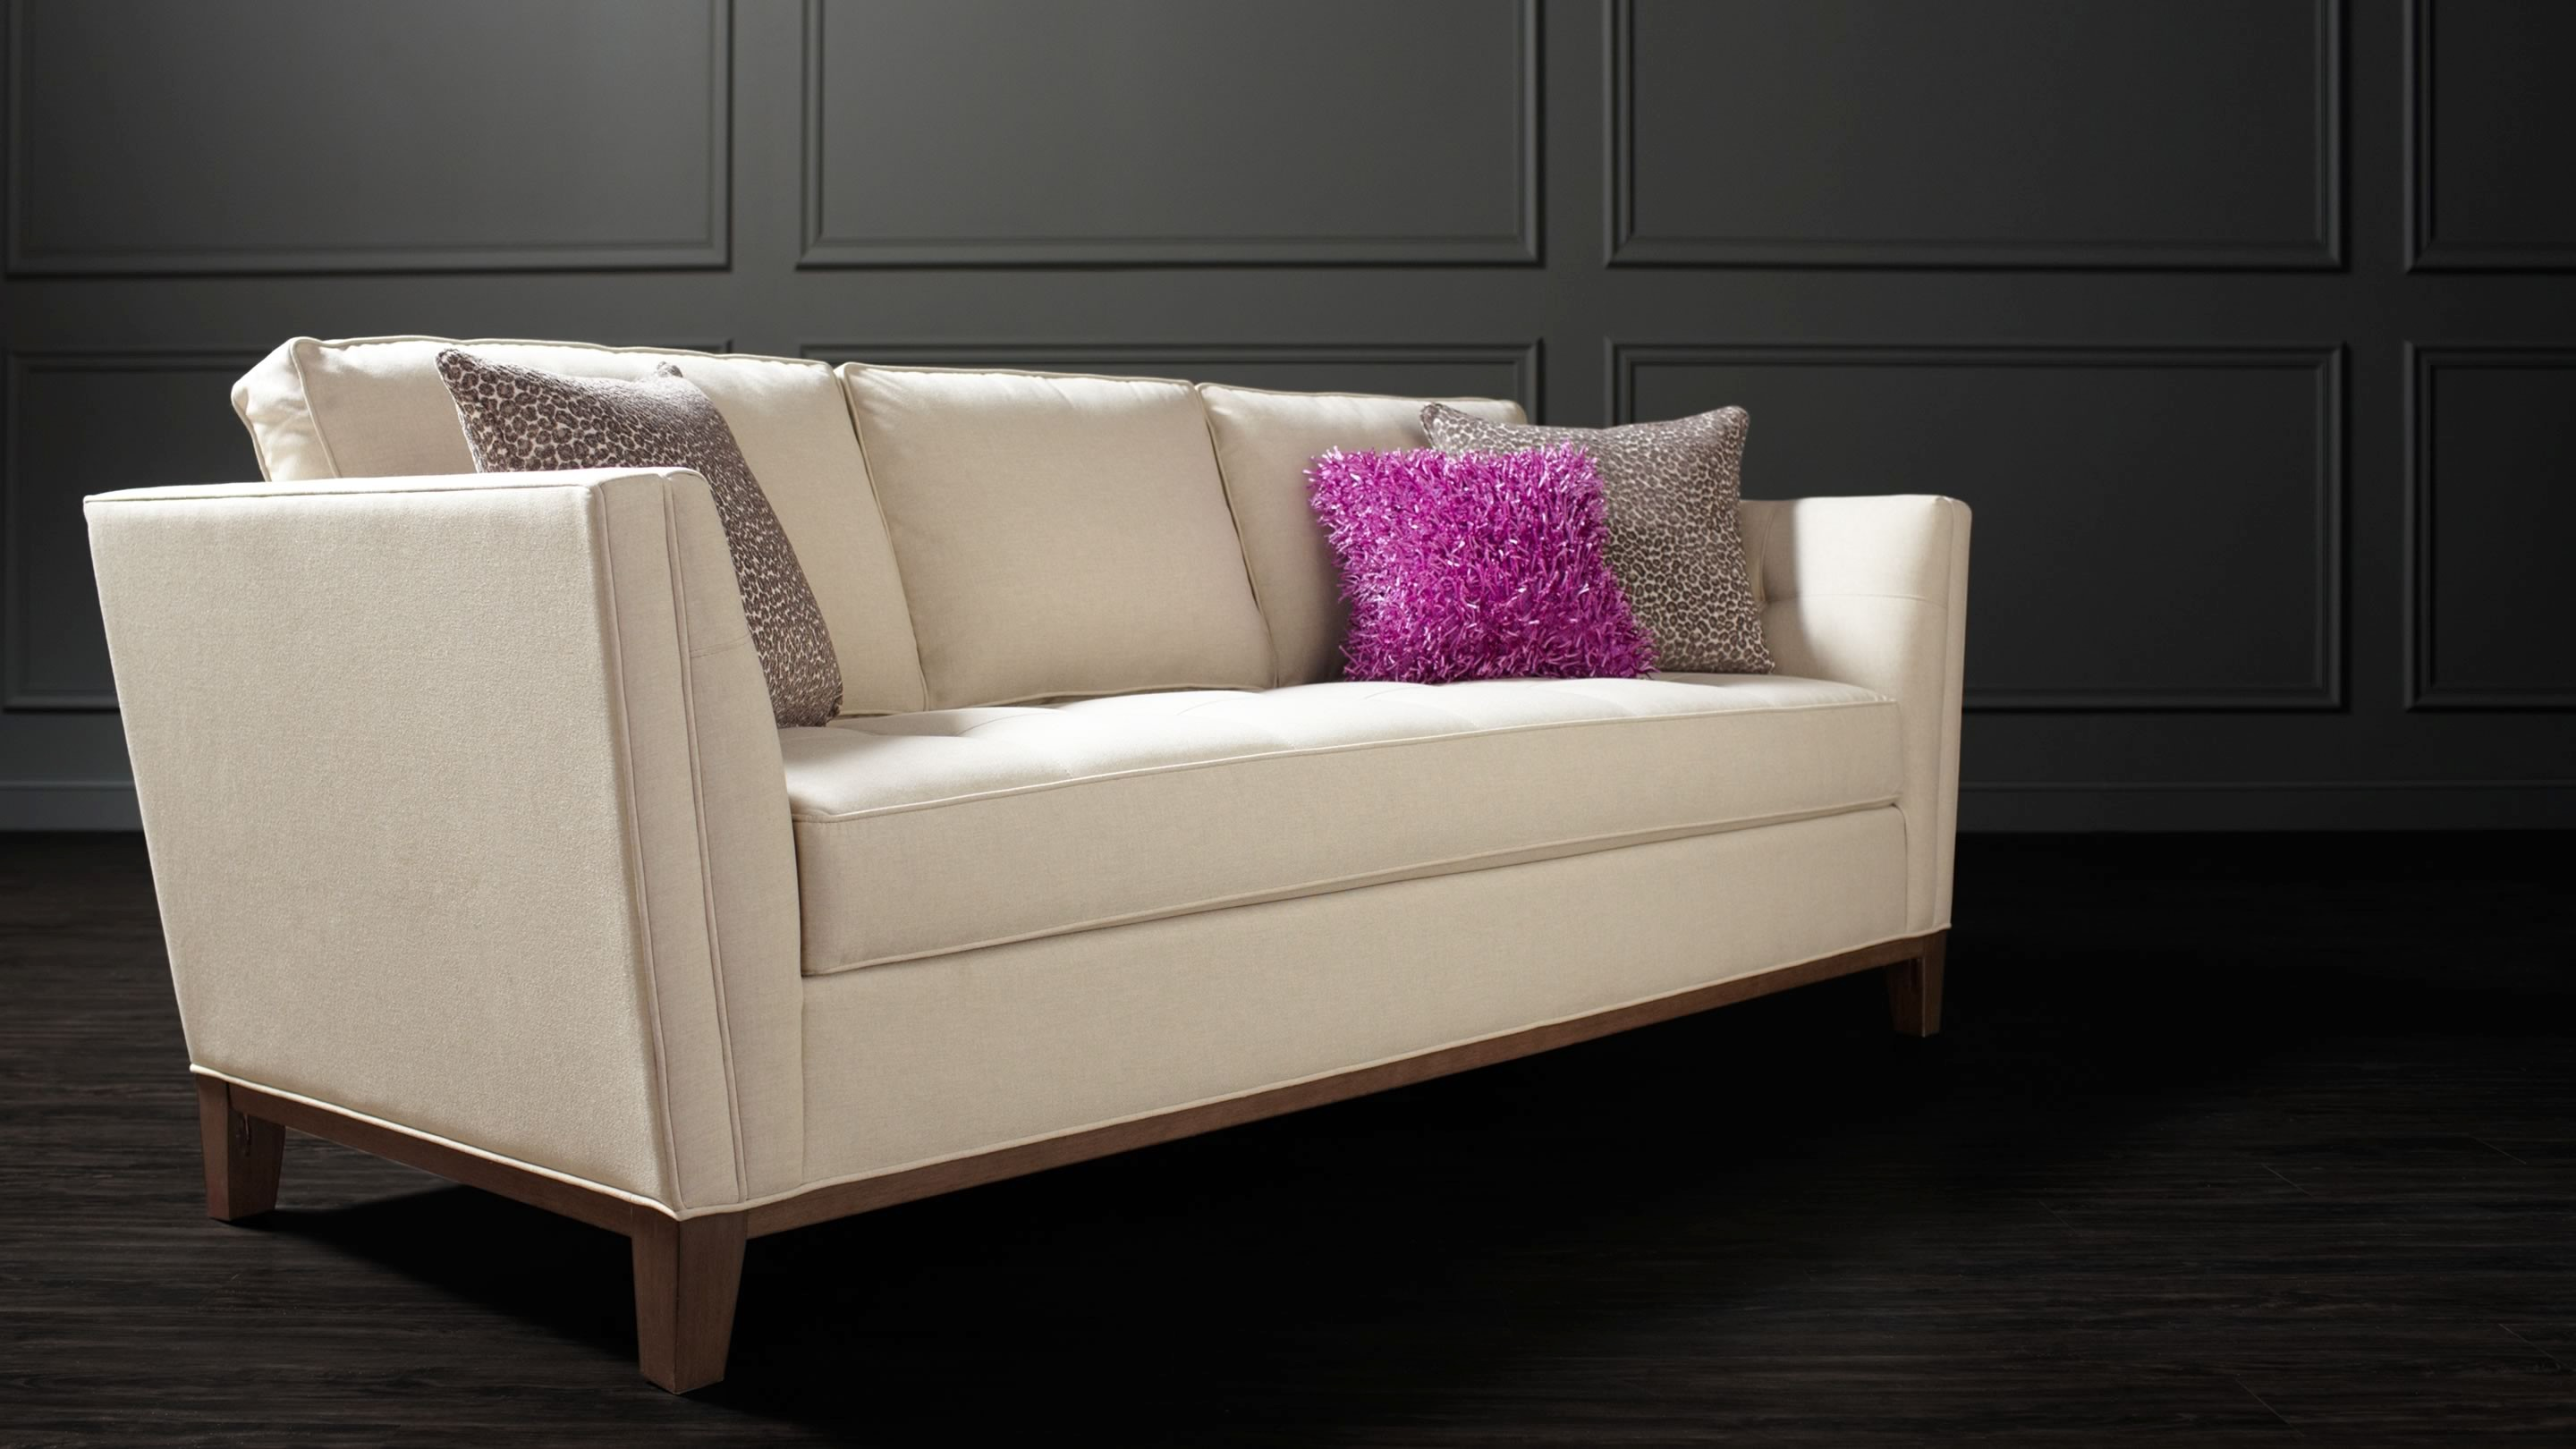 Sleeper sofa Rooms to Go Lovely Rooms to Go sofa Bed Buying Guide Convertible Sleeper sofas Gallery